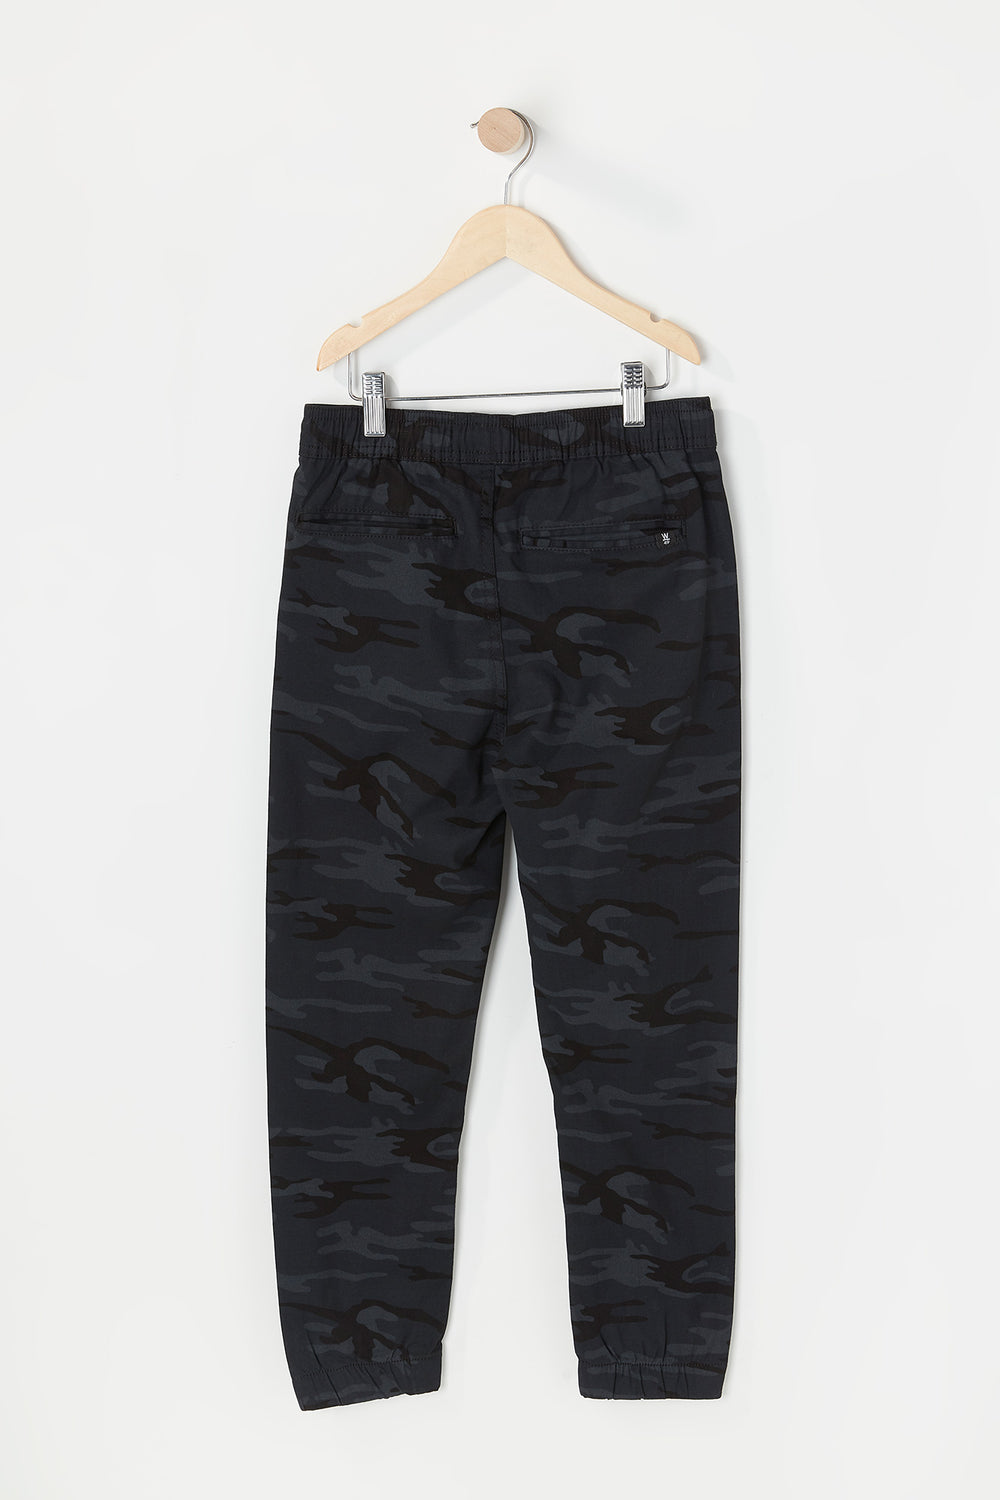 West49 Youth Twill Camo Jogger Black with White